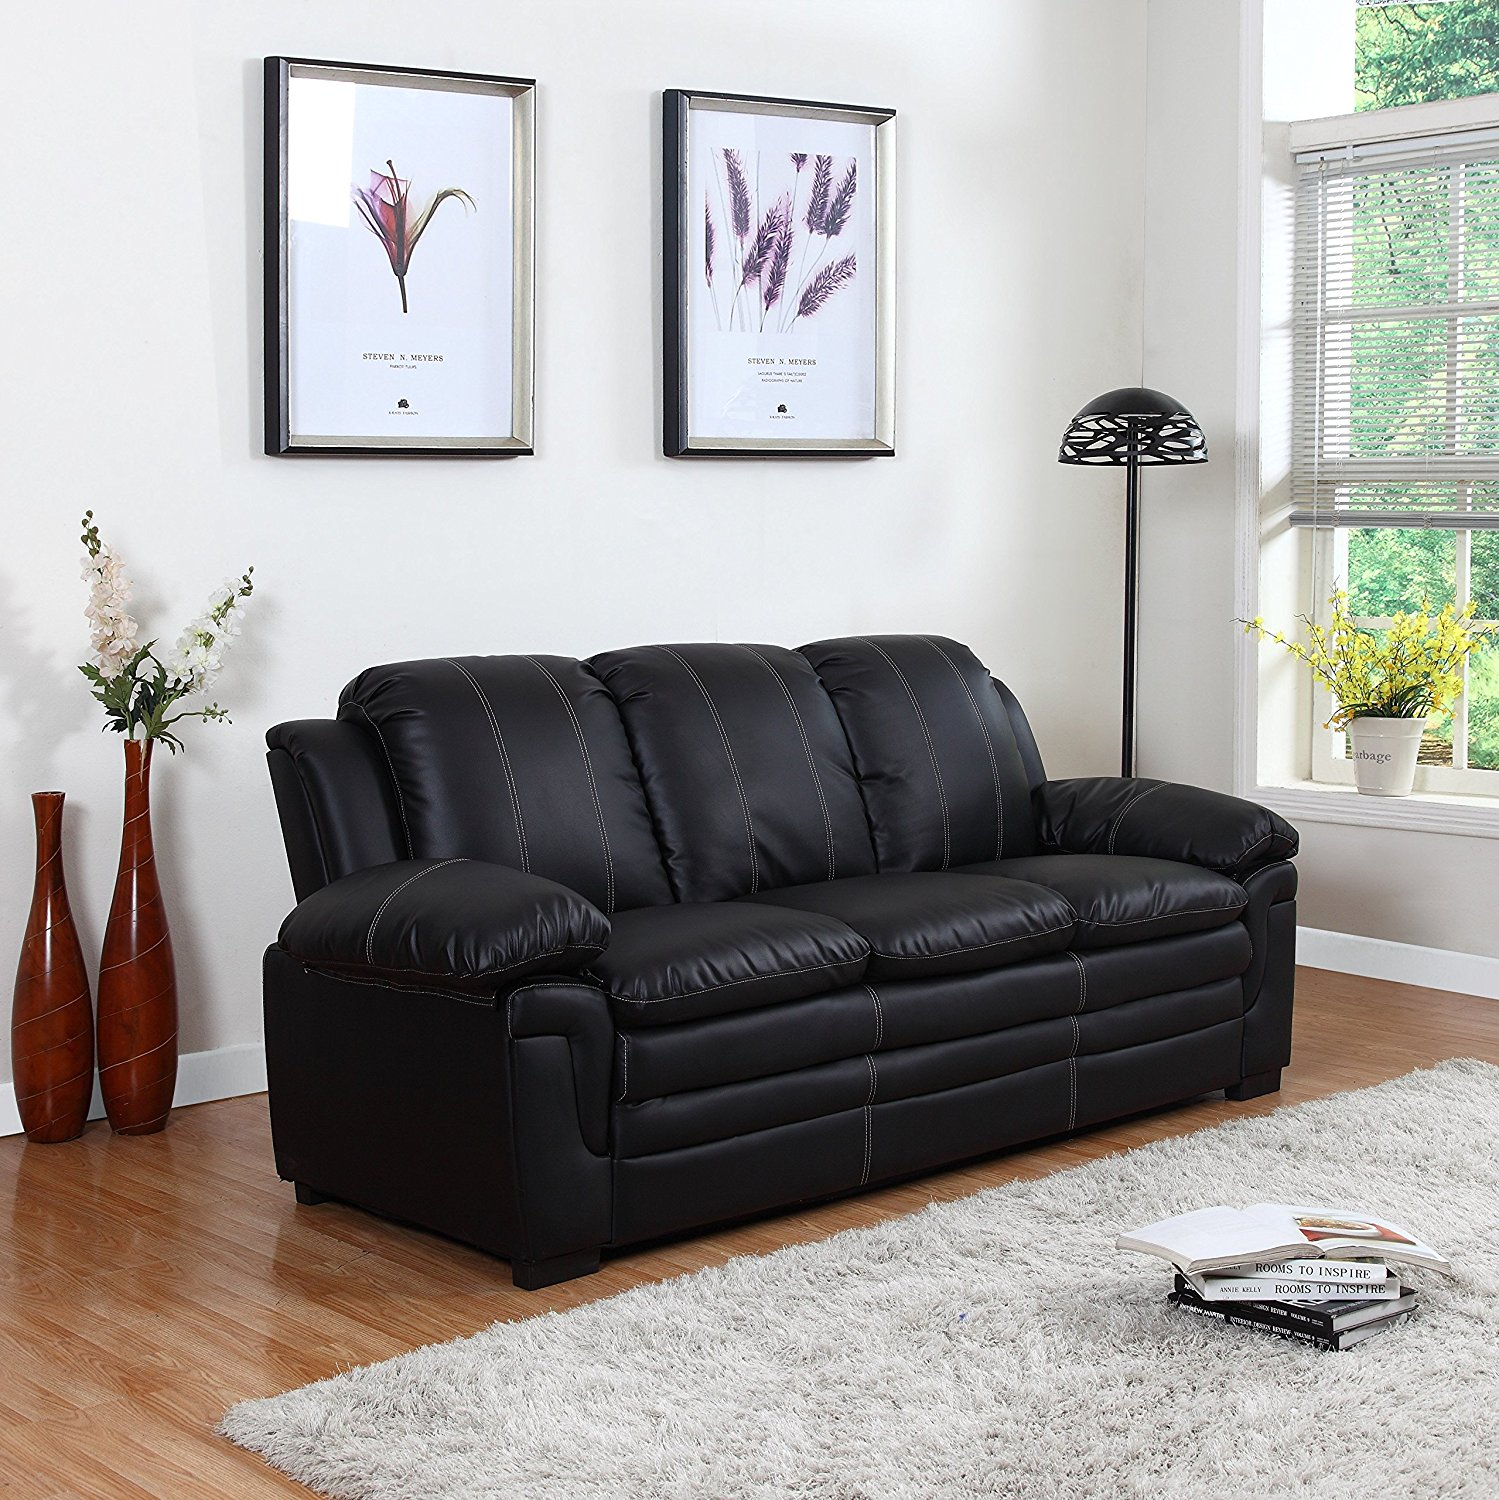 Divano Roma Classic Bonded Leather Sofa and Loveseat Living Room Furniture, Color Black, Brown, and White (Sofa, Black)